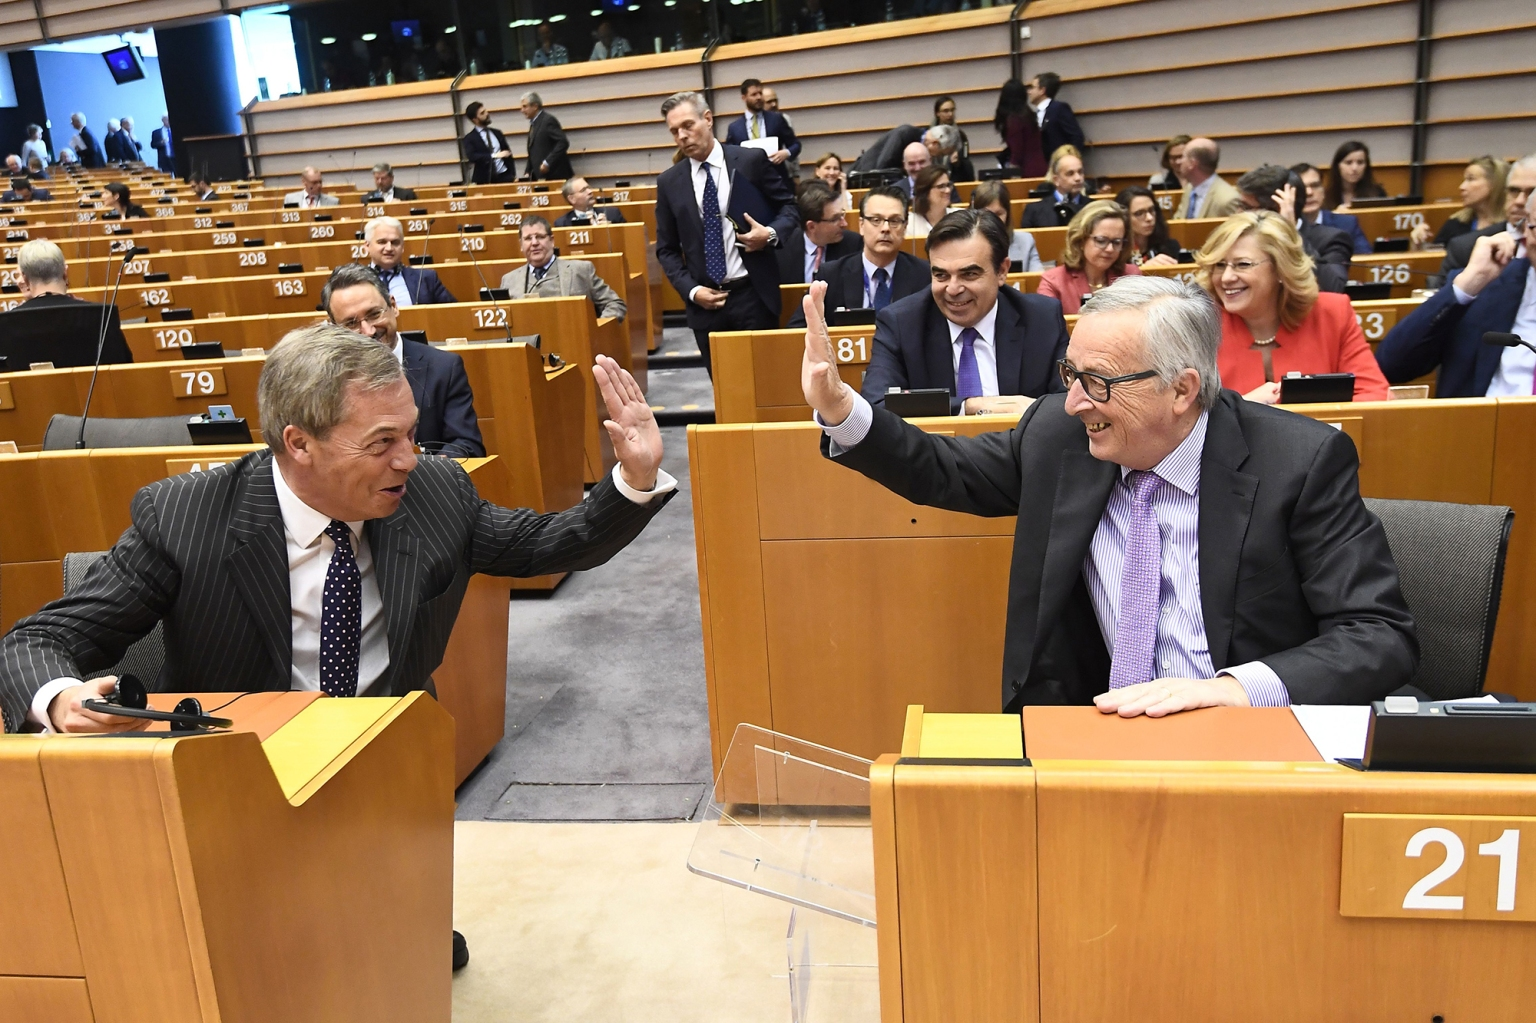 European Commission President Jean-Claude Juncker, right, and Brexit campaigner and member of the European Parliament Nigel Farage exchange a high five at the start of the plenary session on the EU's next long-term budget in the European Parliament in Brussels on May 2. Juncker unveiled plans for a bigger post-Brexit budget worth 1.279 trillion euros covering 2021-2027. EMMANUEL DUNAND/AFP/Getty Images